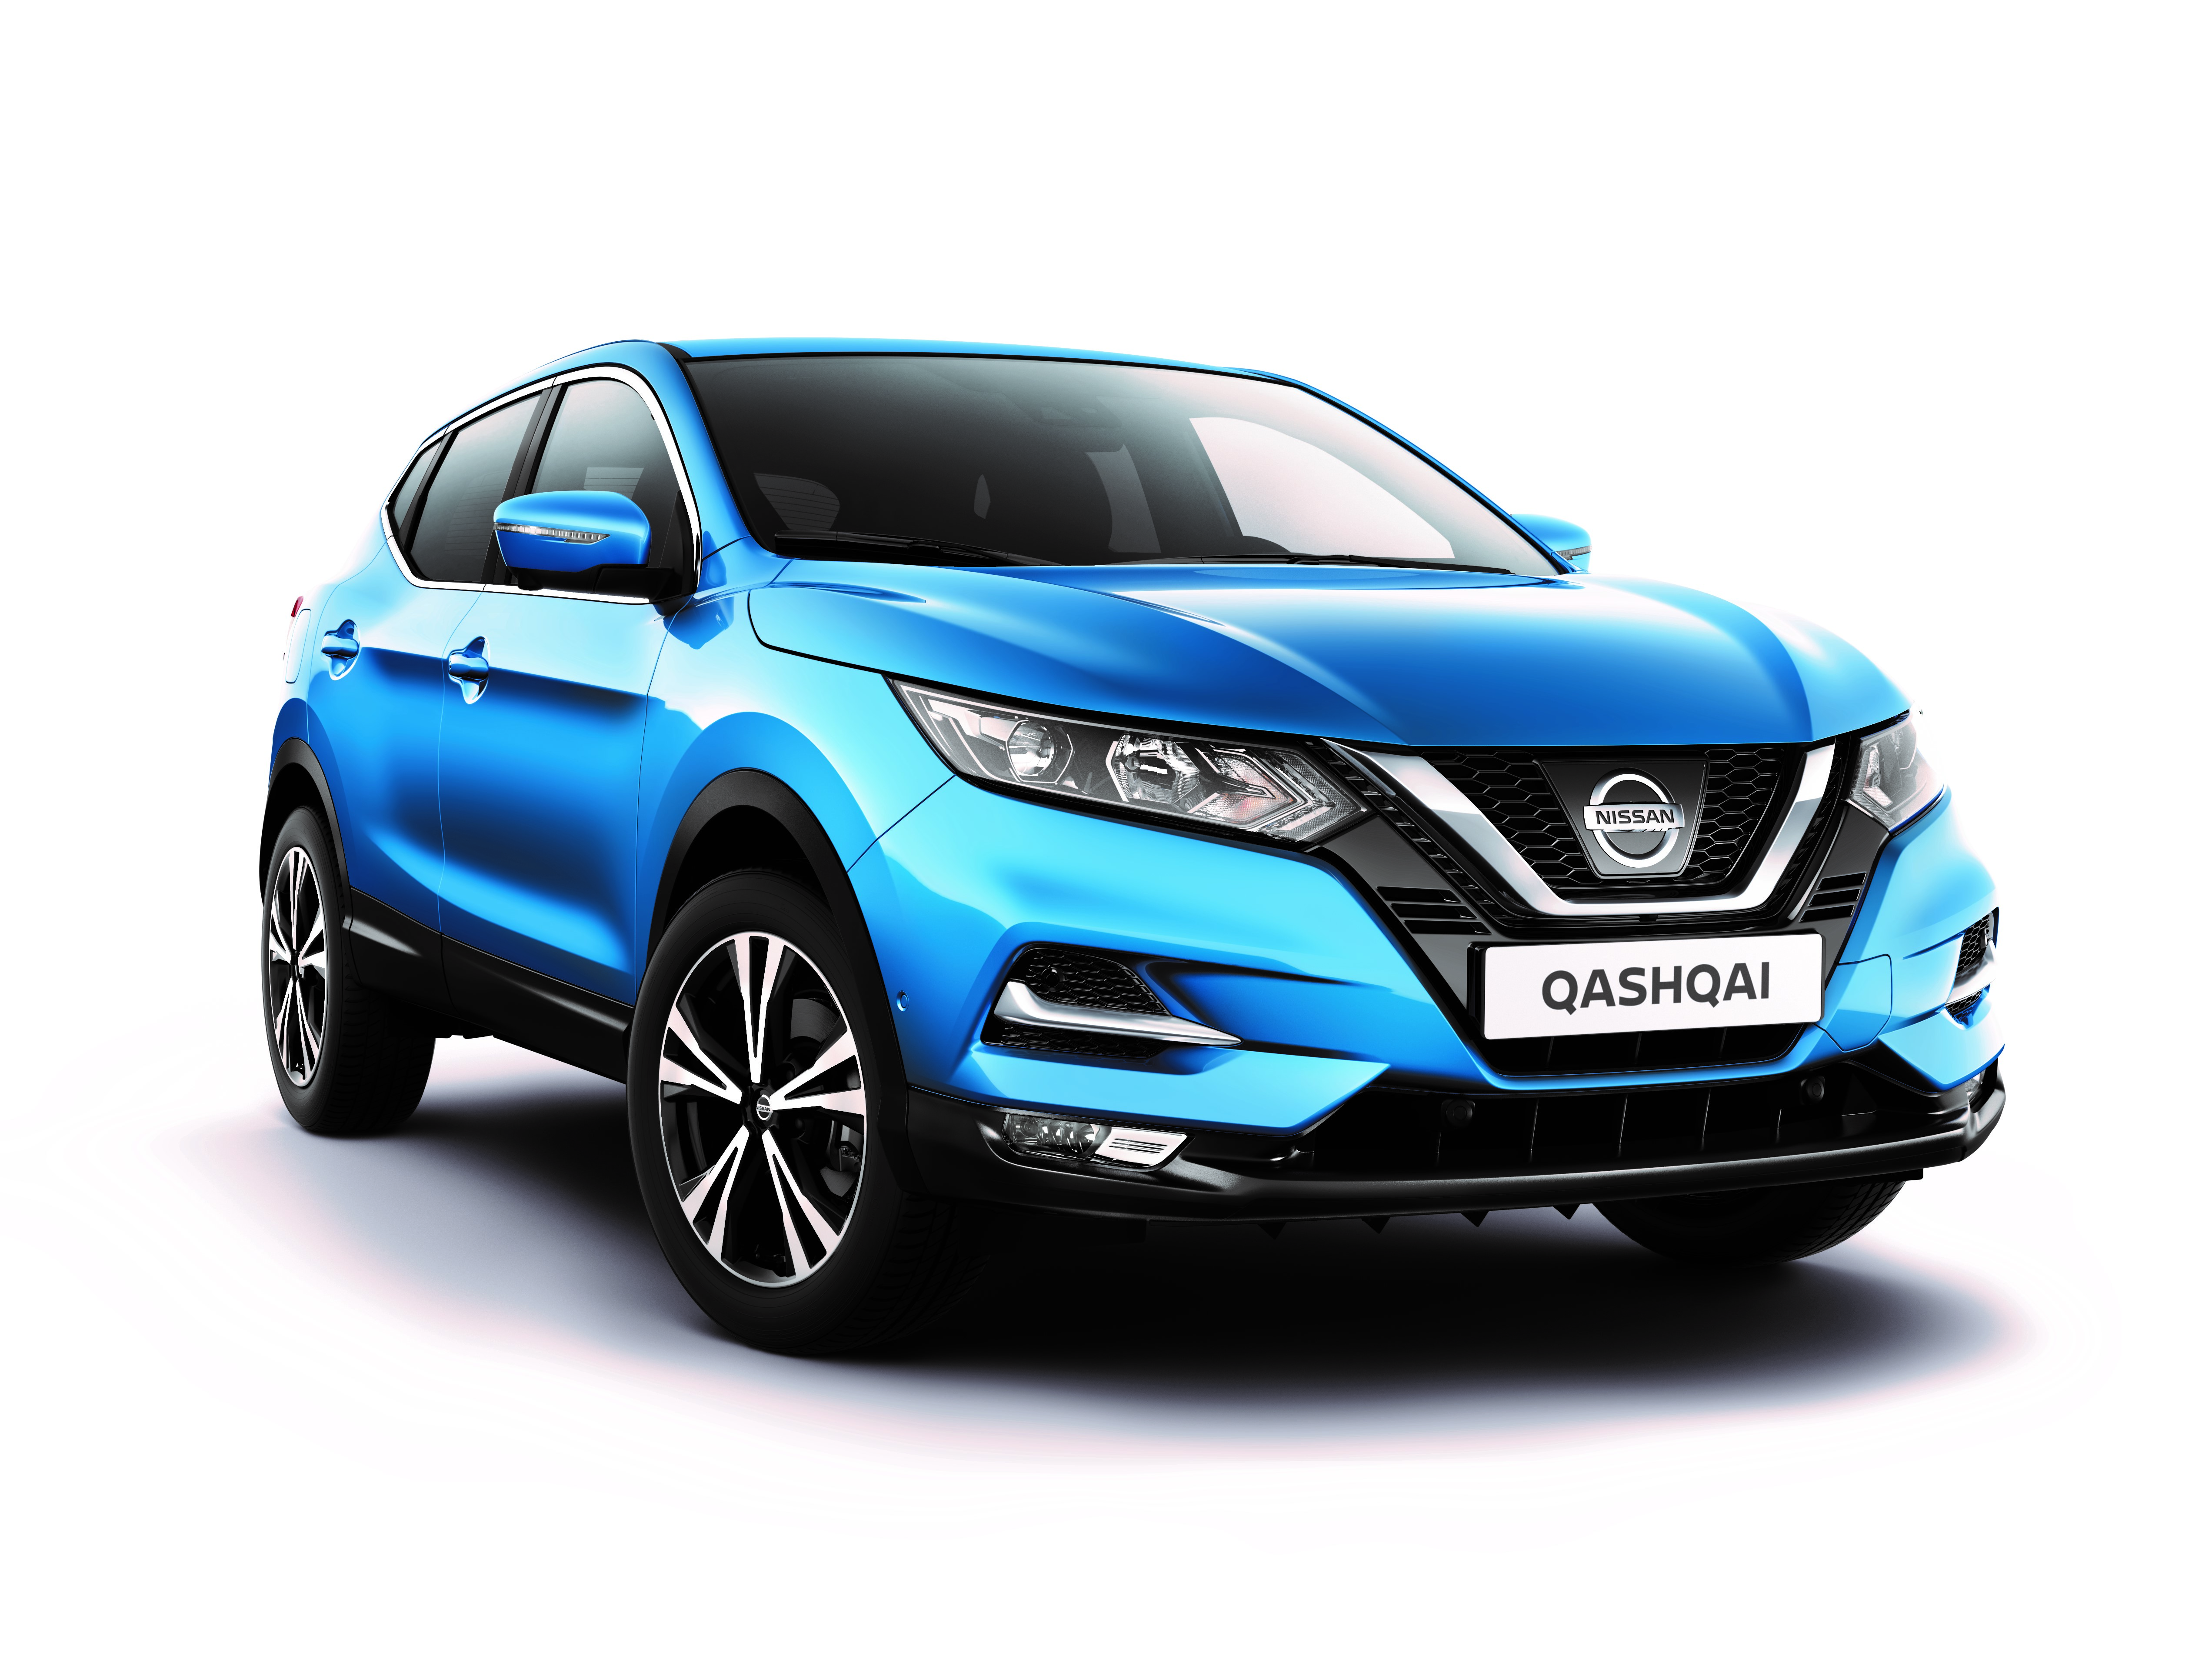 Nissan Qashqai dCi 115 Acenta 2WD 6M/T MY19 WLTP